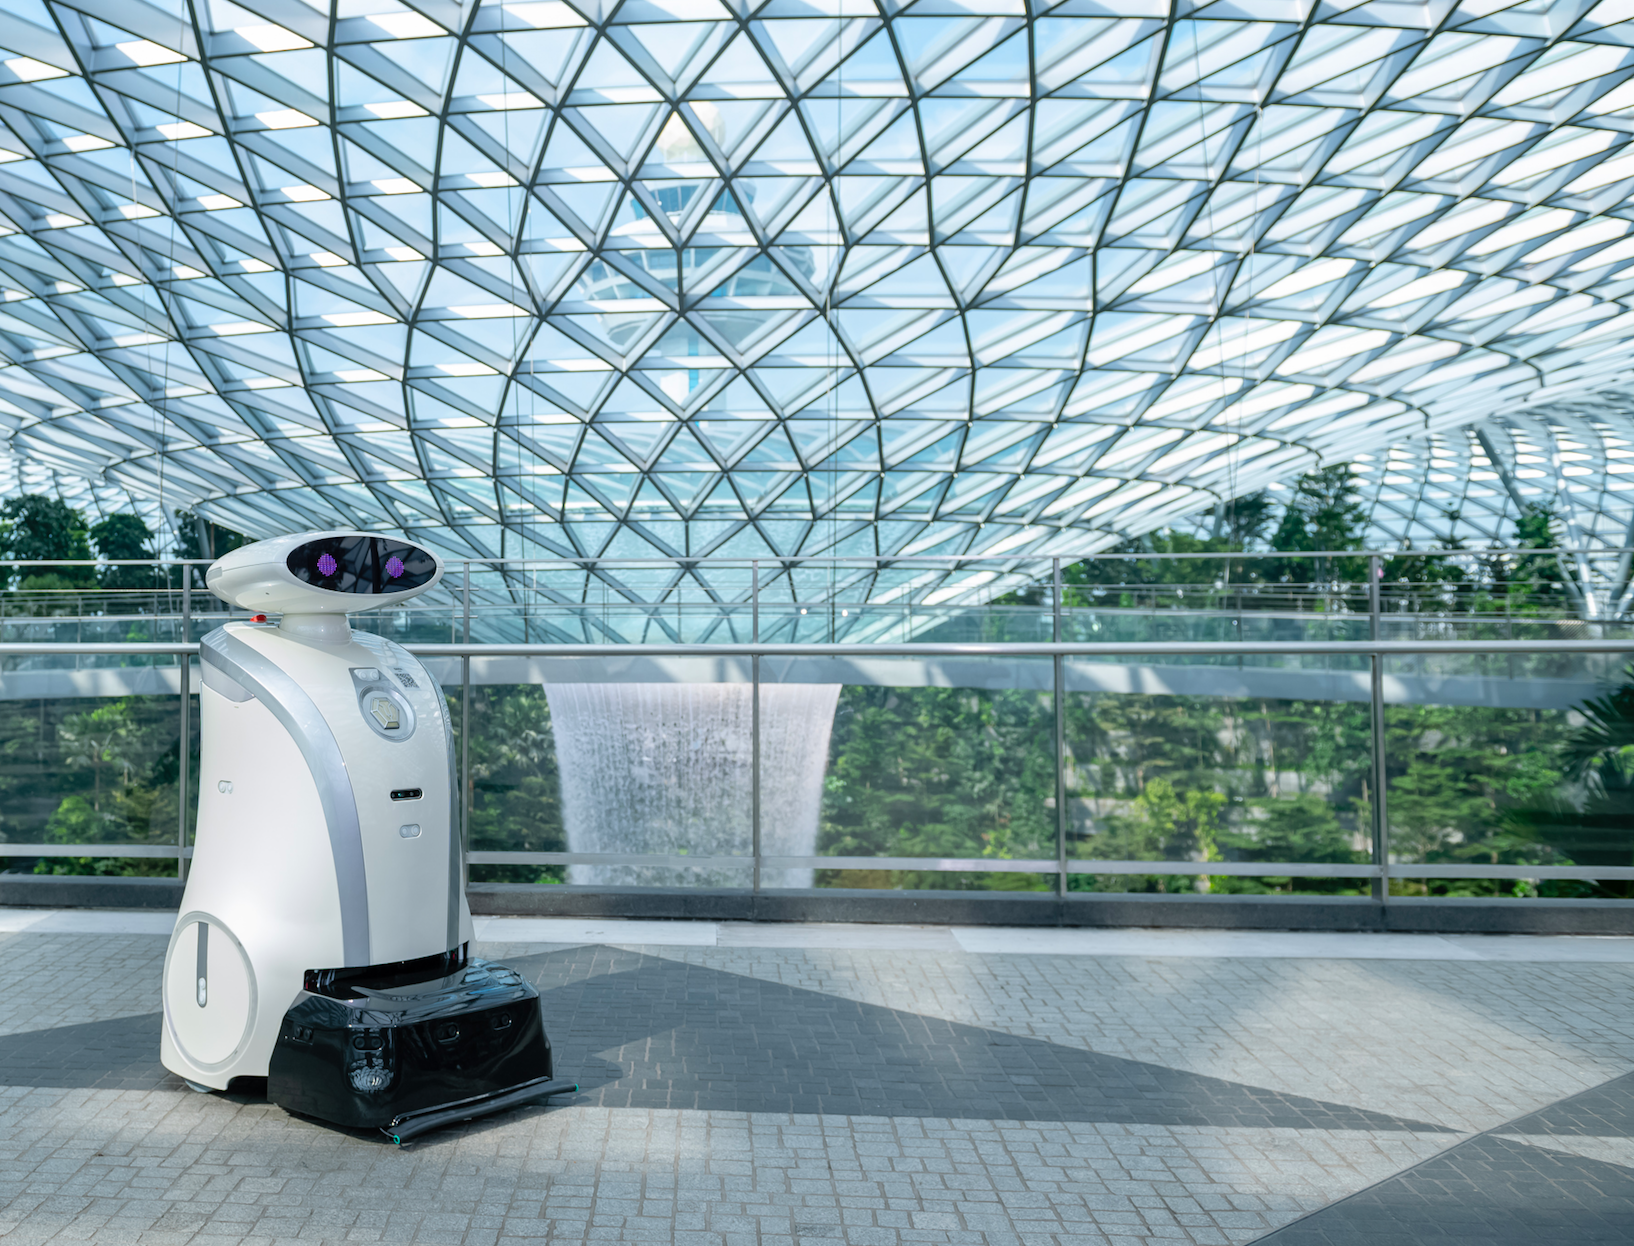 Robots in Singapore: 4 Innovations that Operate Around the Island